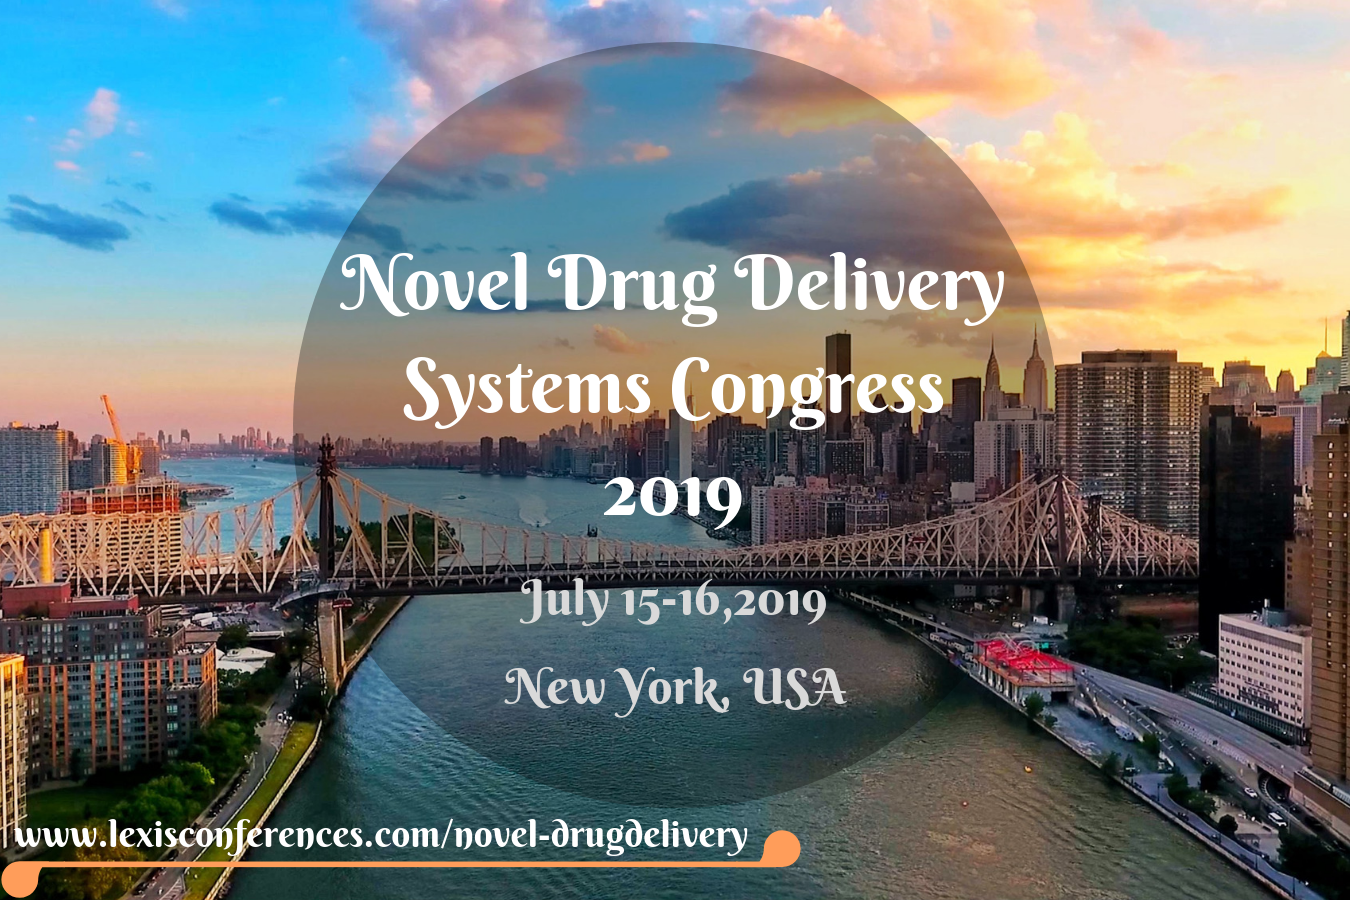 Novel Drug Delivery Systems Congress 2019, New York, United States